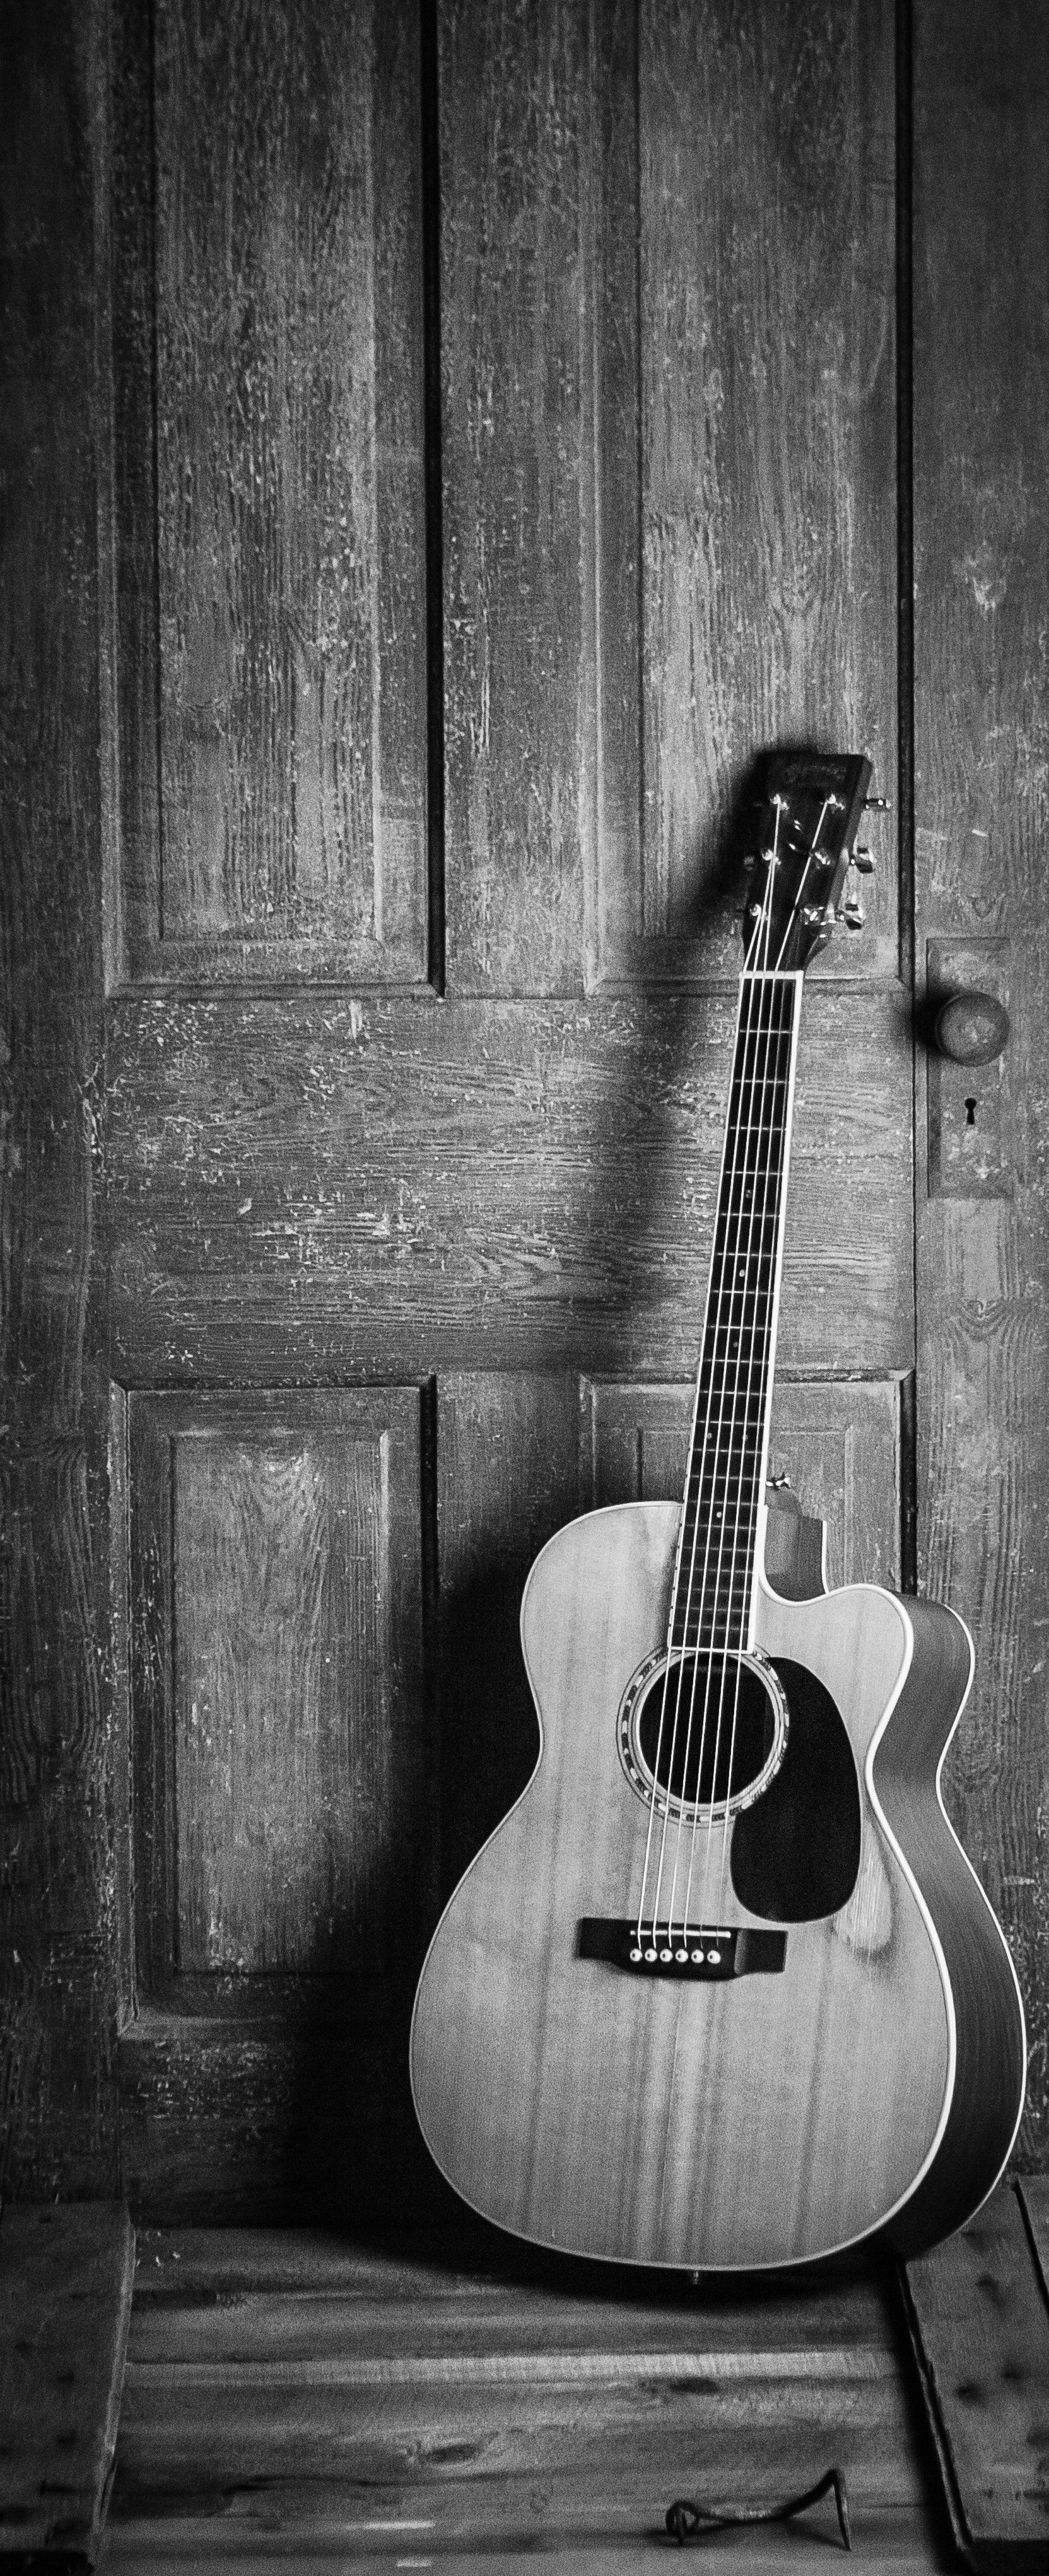 Acoustic Guitar Black And White Photo Museum Quality Fine Art Prints Guitar Photos Black And White Aesthetic Black And White Picture Wall